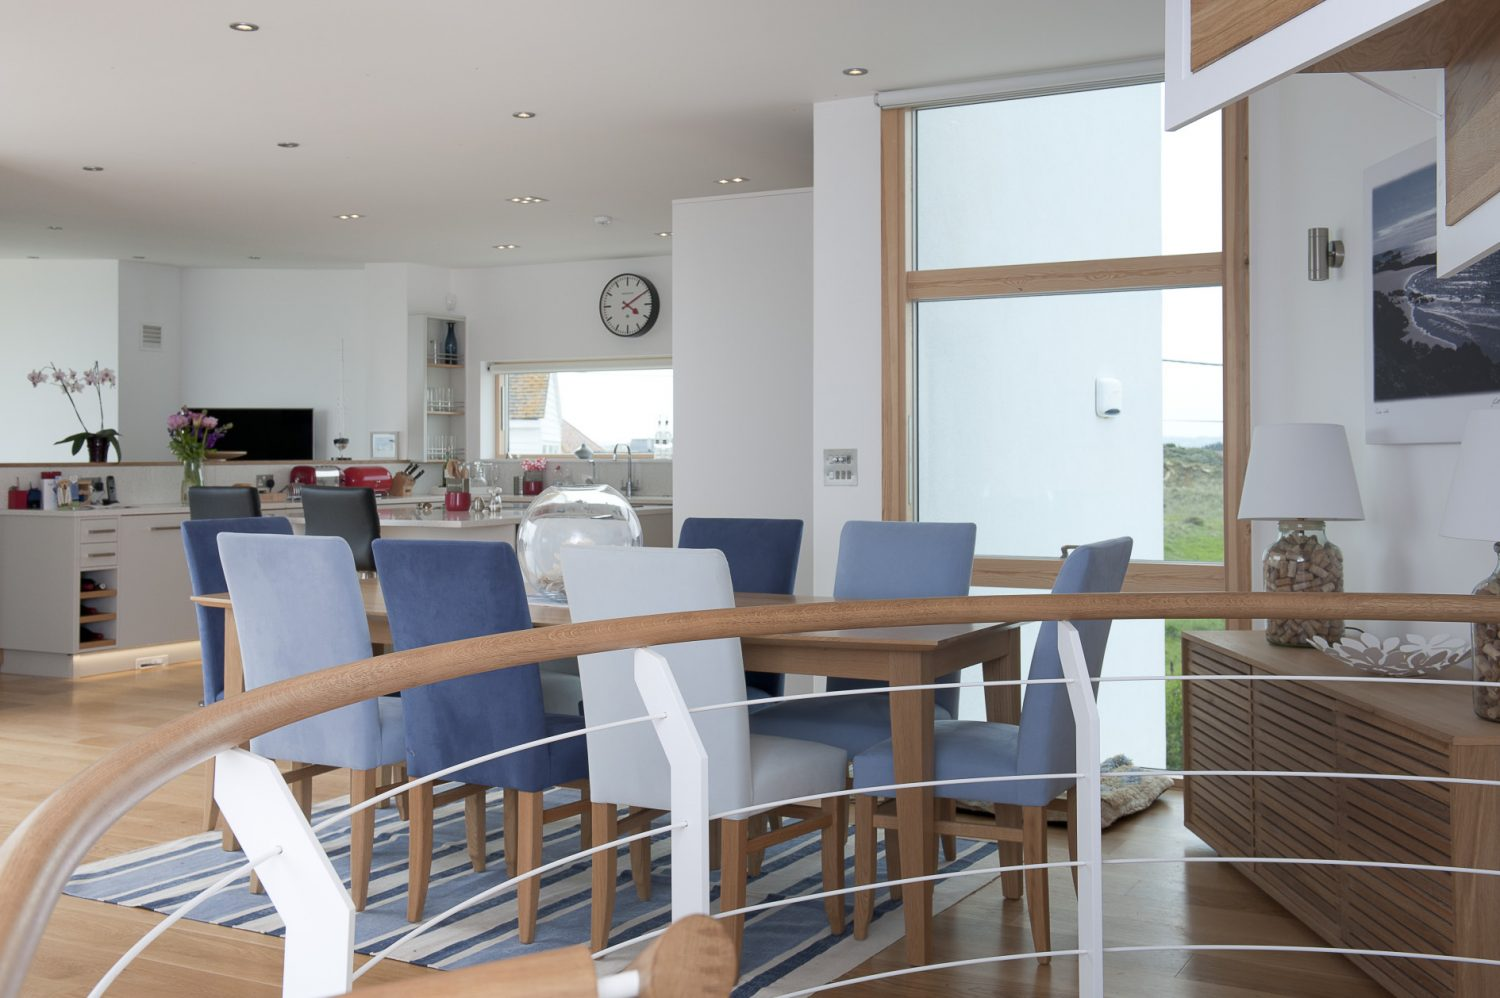 n the open plan dining area stands a long oak dining table surrounded by chairs covered in varying shades of blue family-friendly fabric